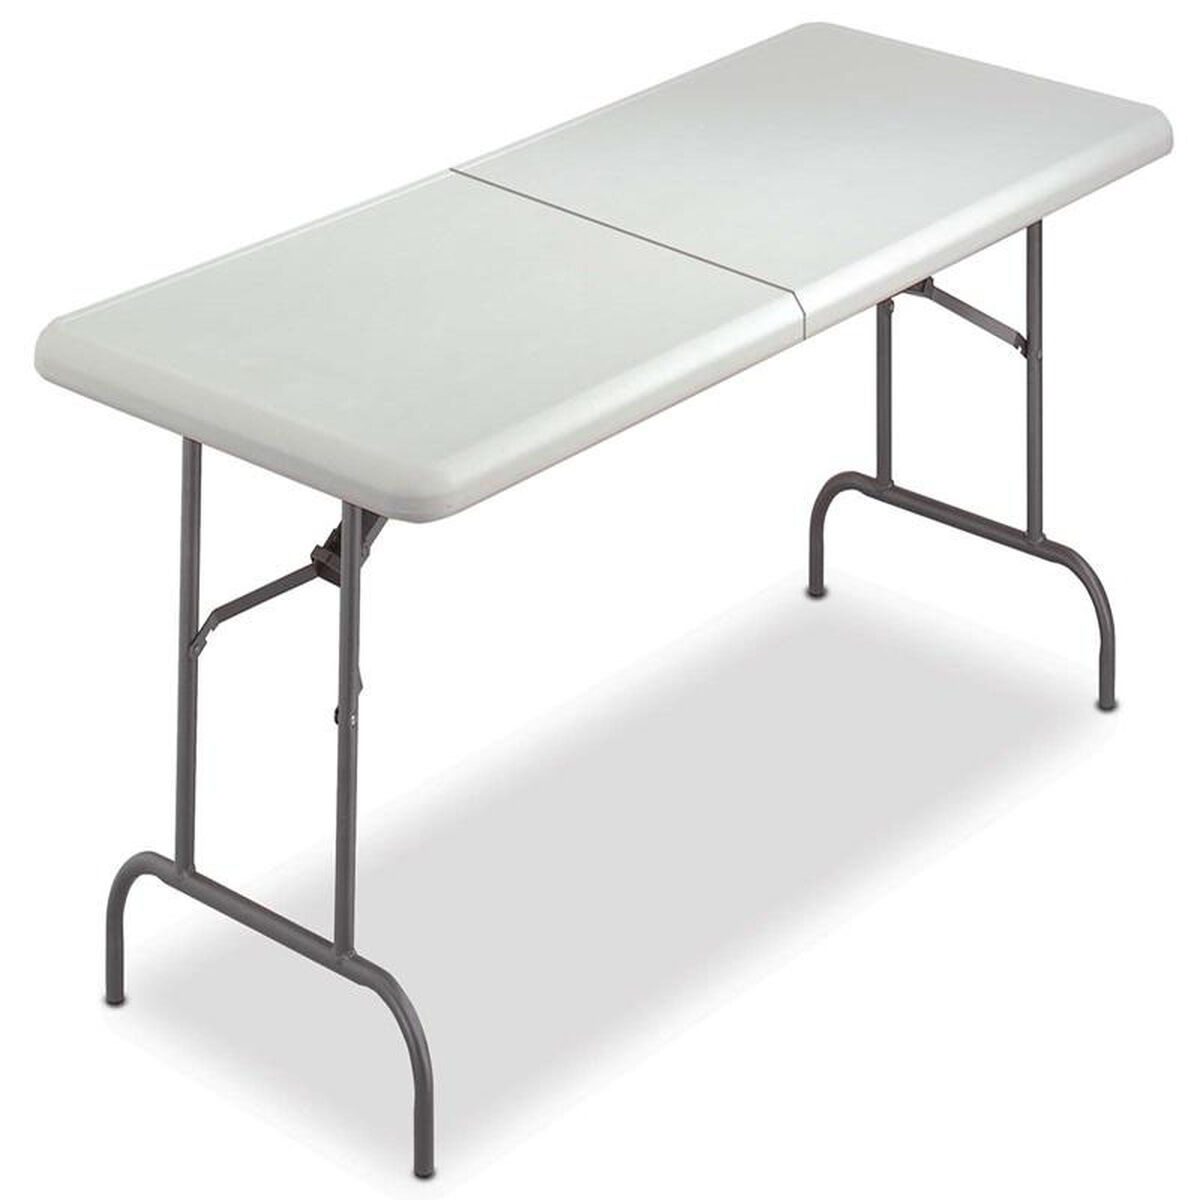 our iceberg indestructables too bifold resin folding table 60w x 30d x 29h platinum